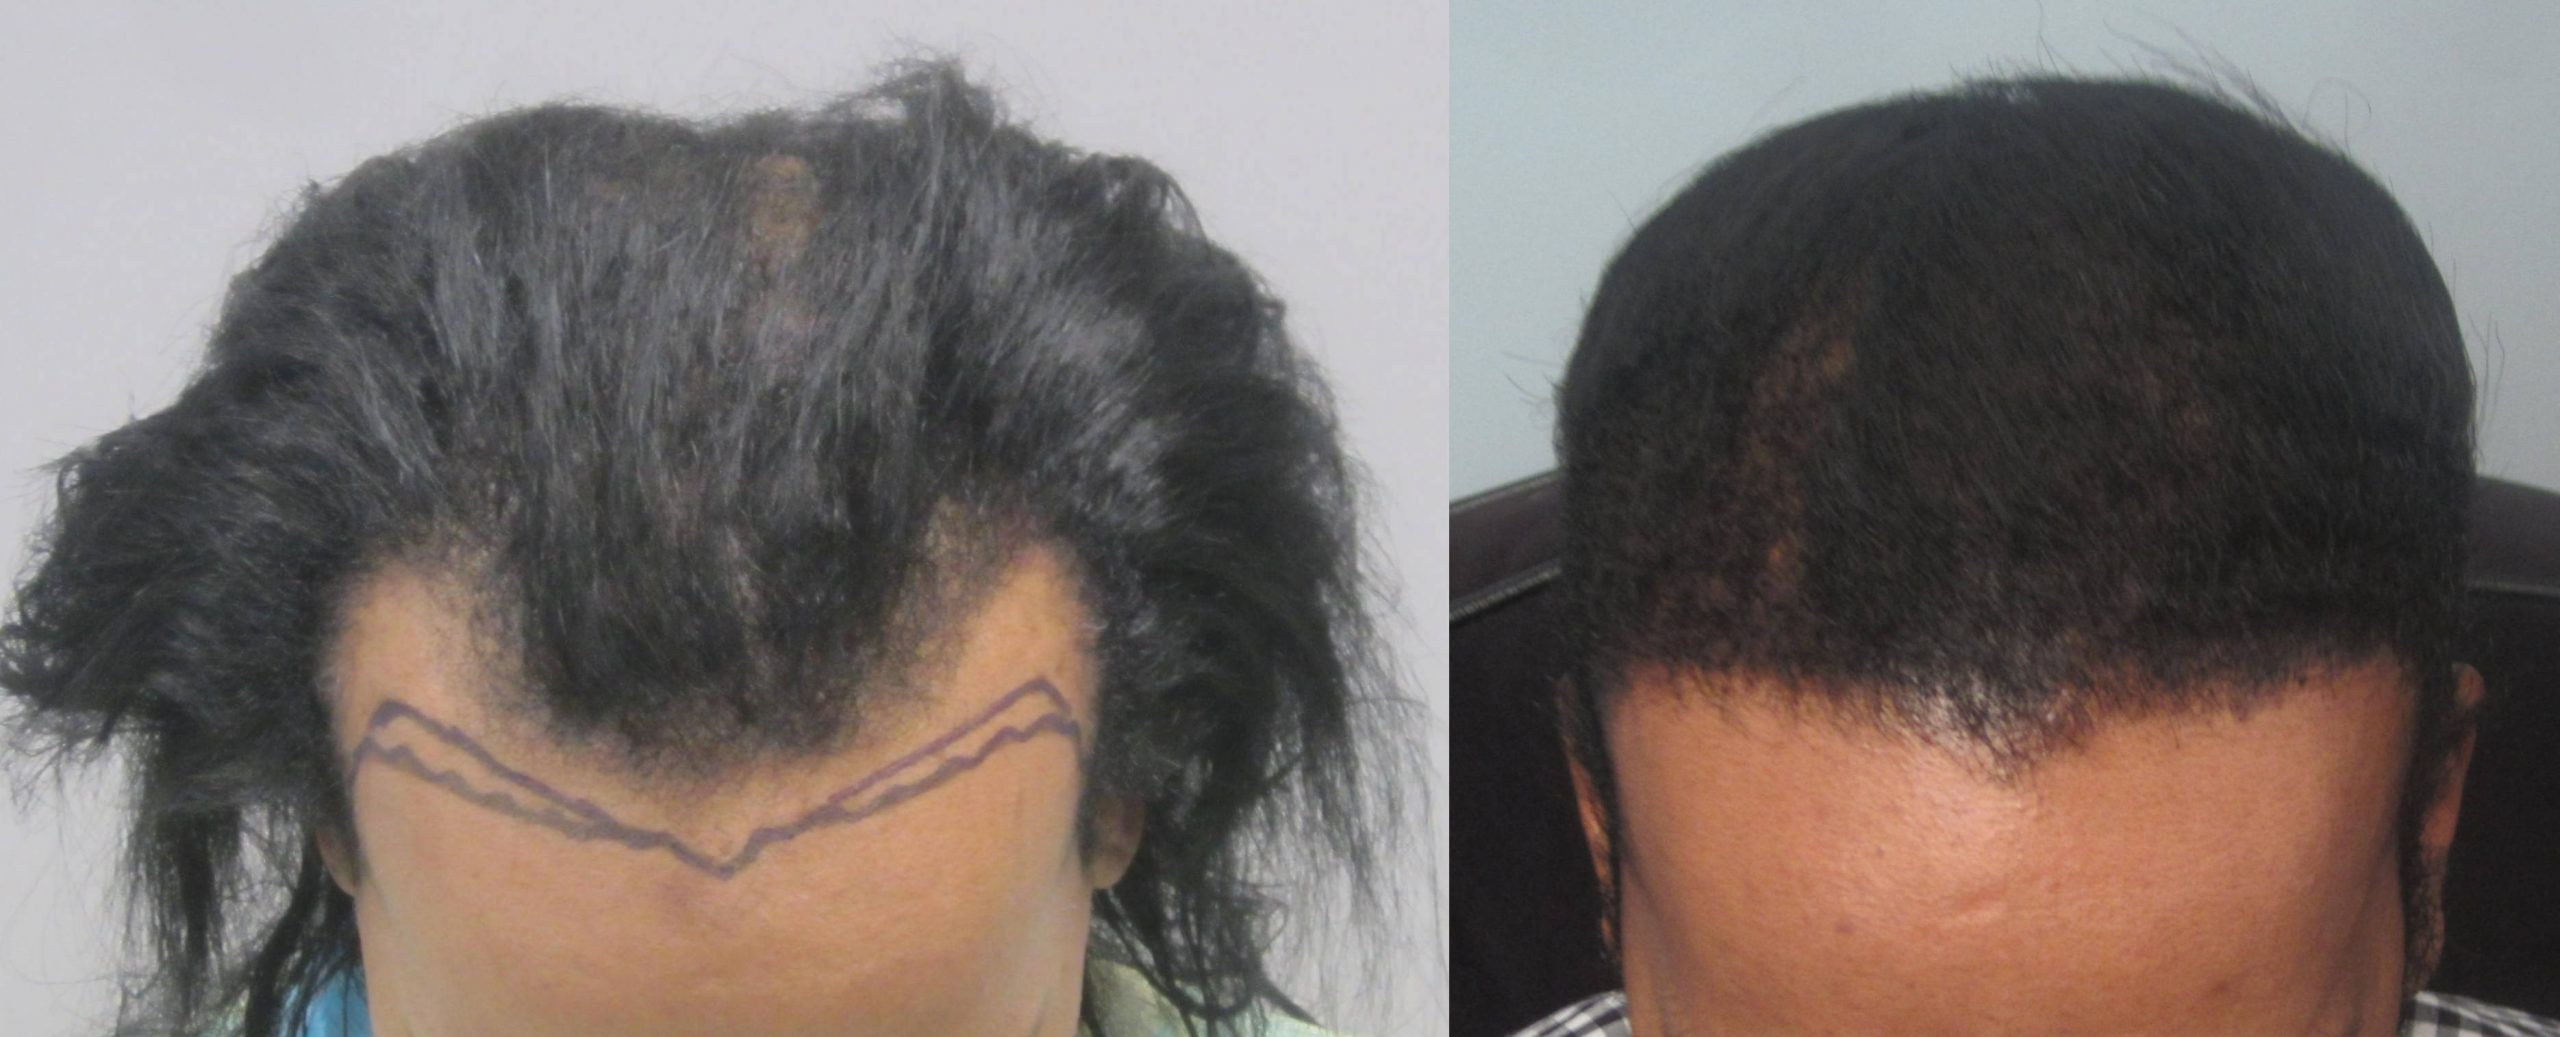 African American Hair restoration: top view. Dr. Behnam specializes in curly hair transplant.